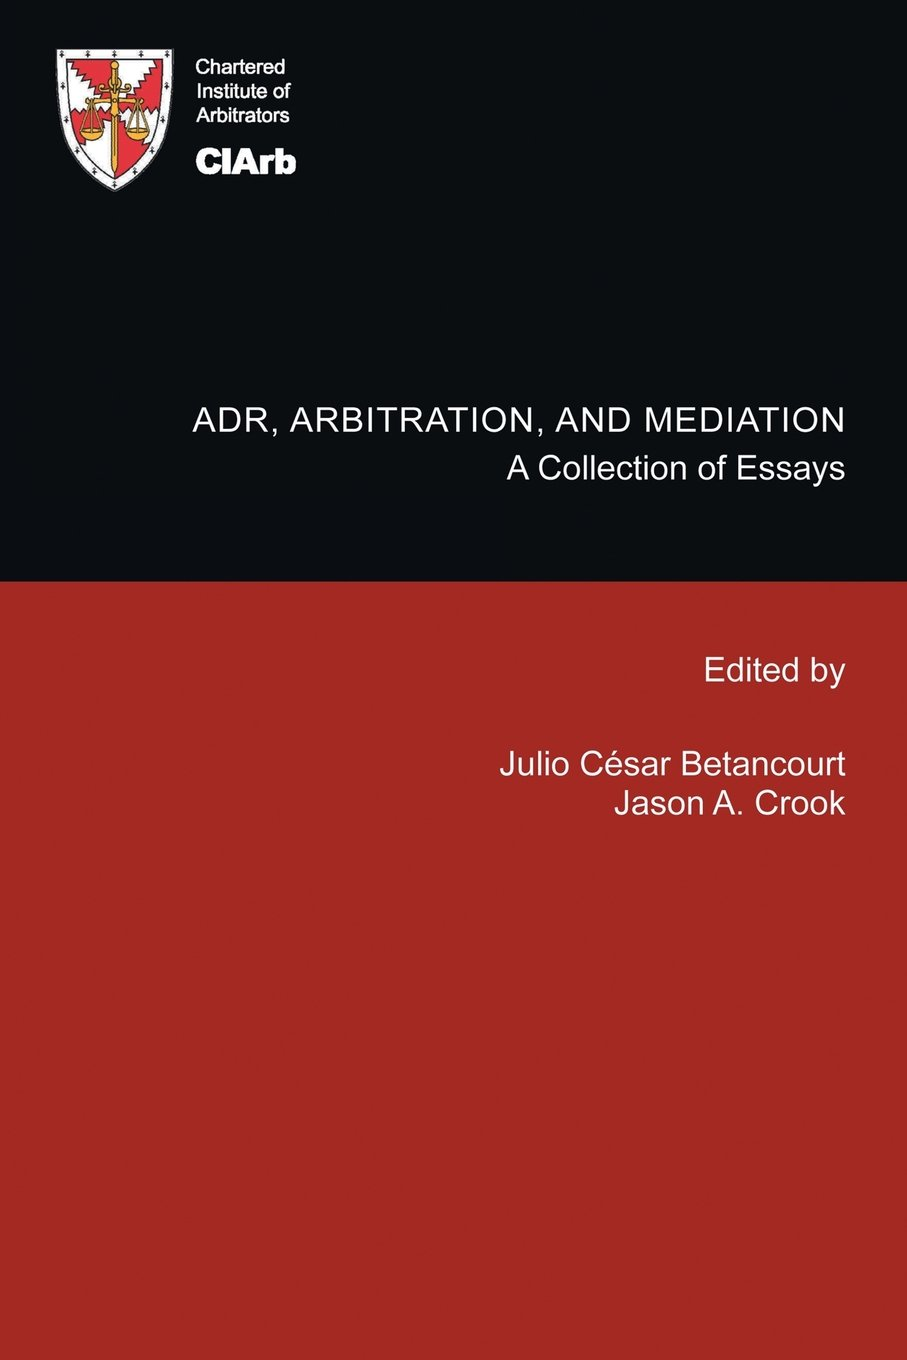 adr arbitration and mediation a collection of essays amazon co adr arbitration and mediation a collection of essays amazon co uk julio ceacutesar betancourt 9781491886649 books